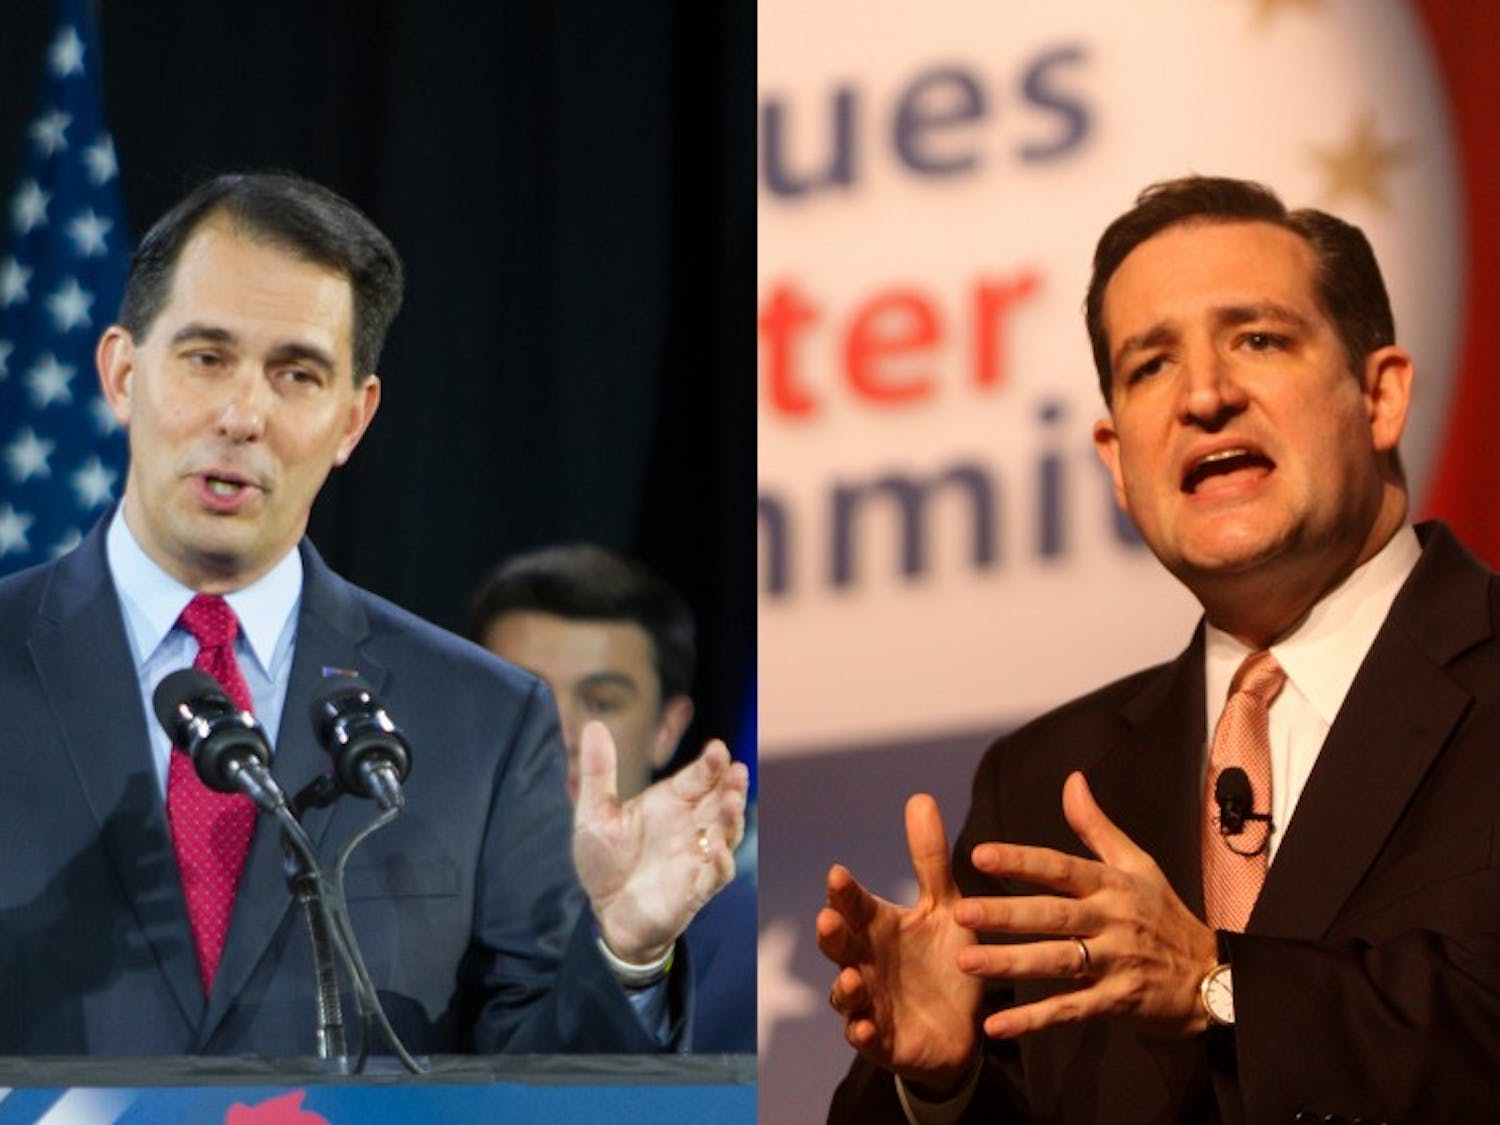 Wisconsin Gov. Scott Walker (left) is appearing in a new TVad supporting Ted Cruz for president.